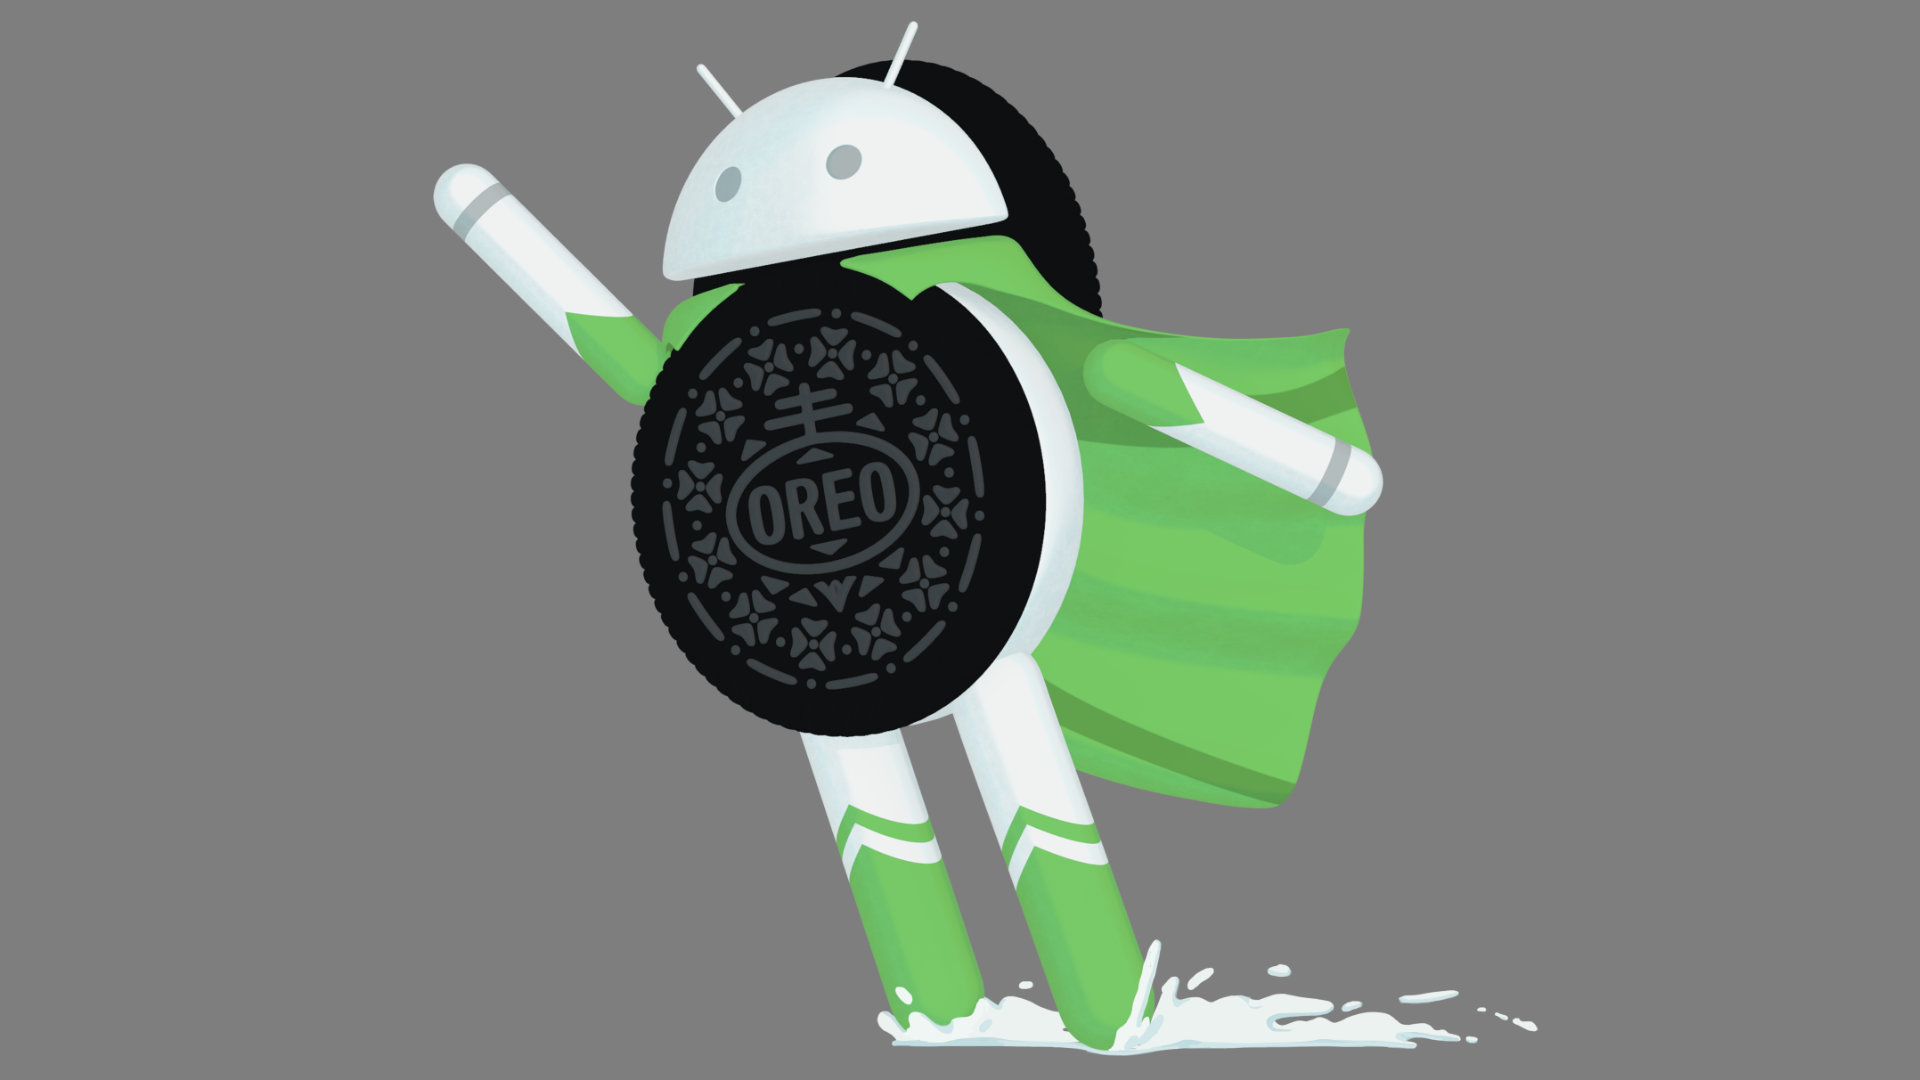 Android Oreo: 5 sweetest offerings from the Android bakery